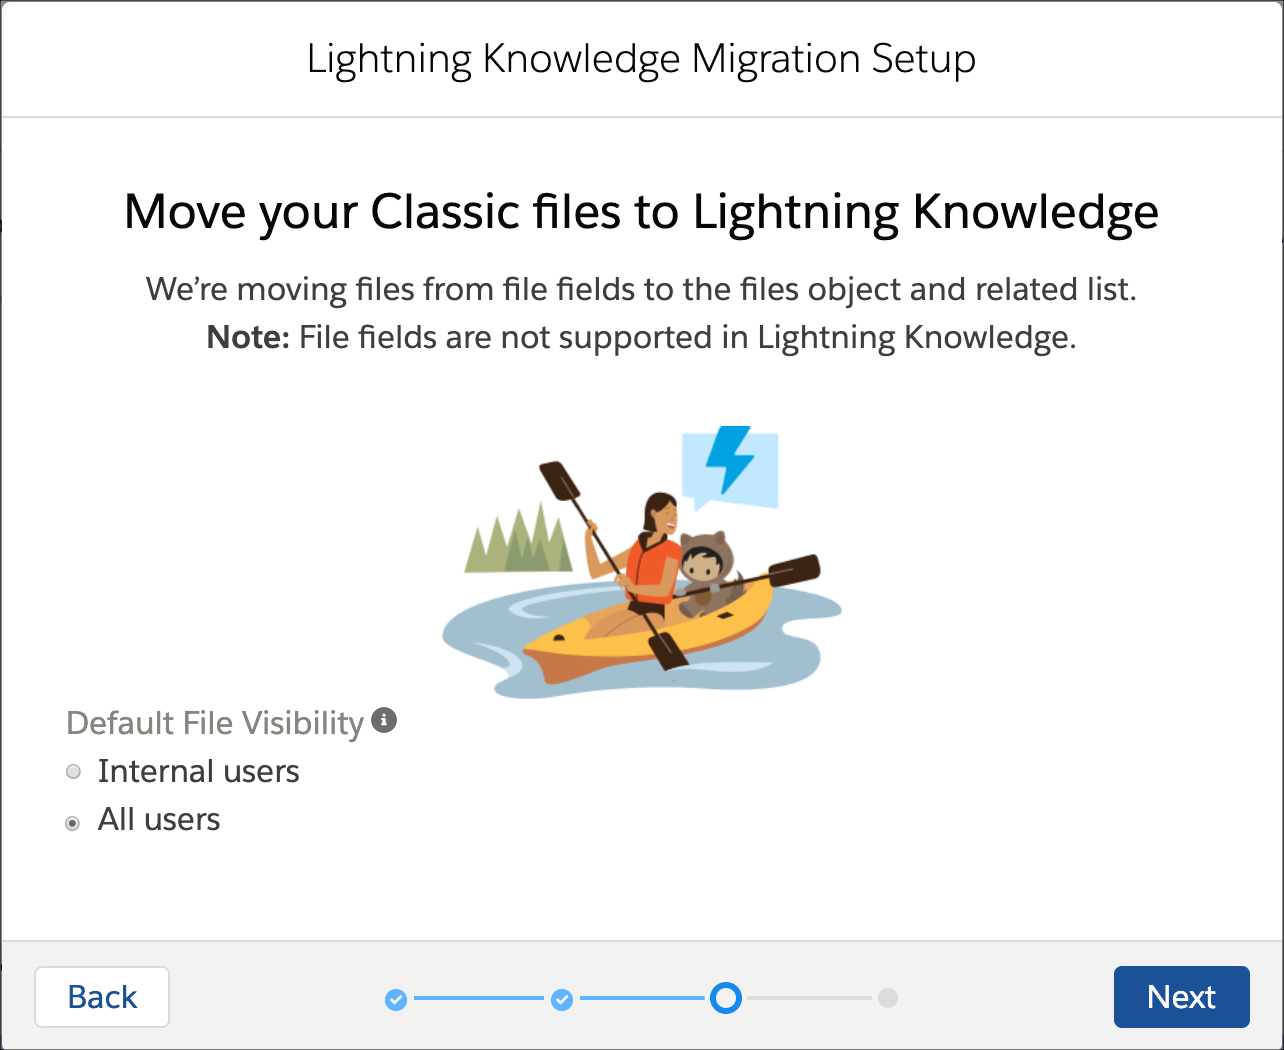 Lightning Migration tool displaying the default file visibilty options.